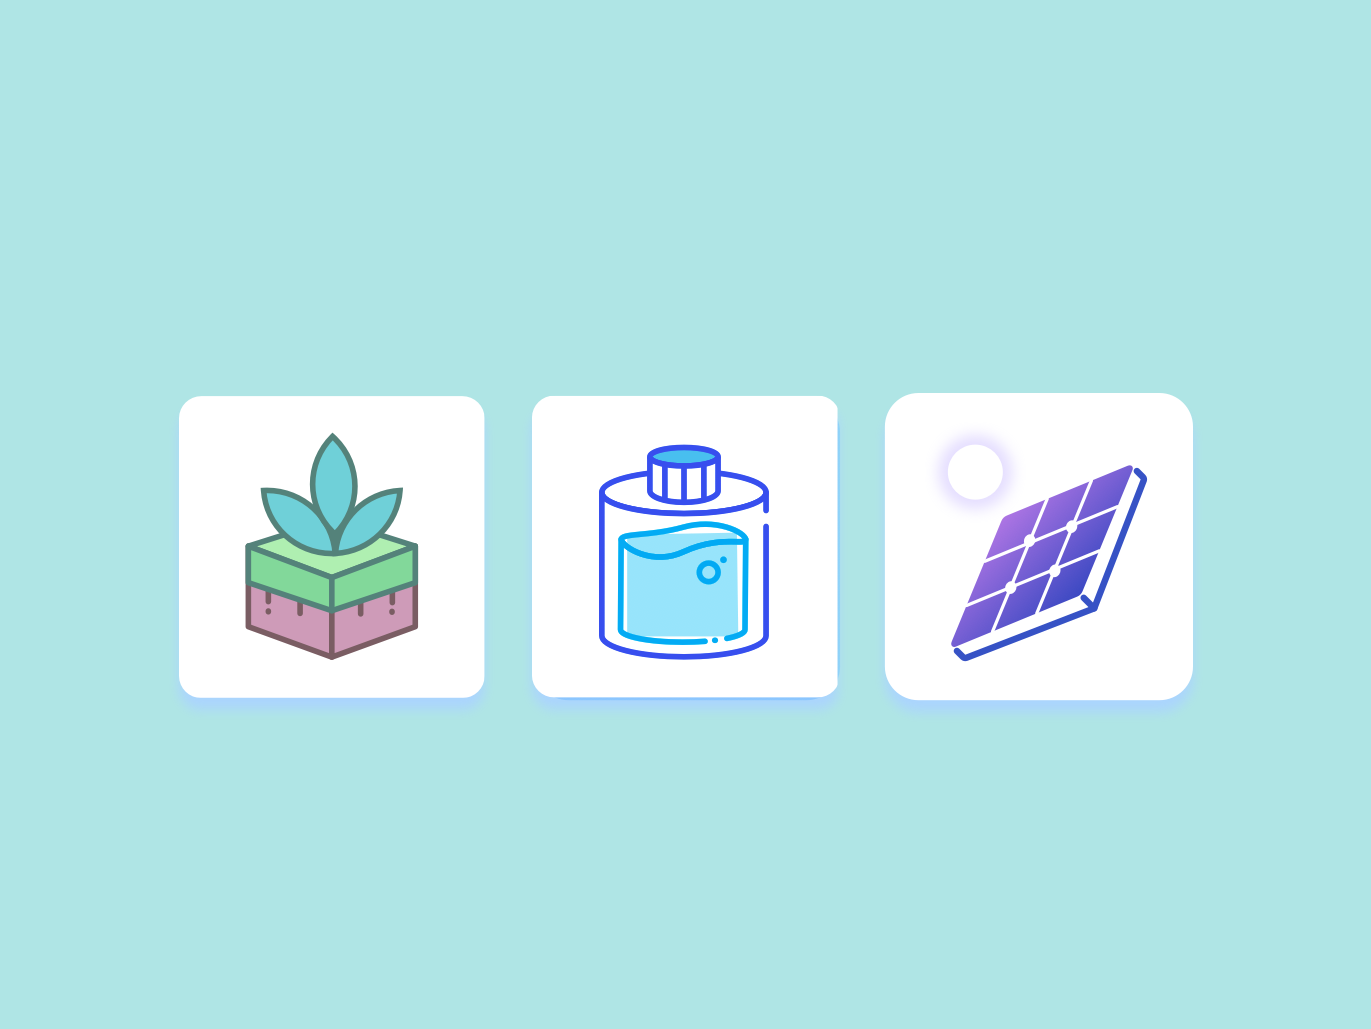 Daily UI 005 - App Icons isometric art green environmental awareness app icon dailyui daily ui 005 adobe illustrator 2d